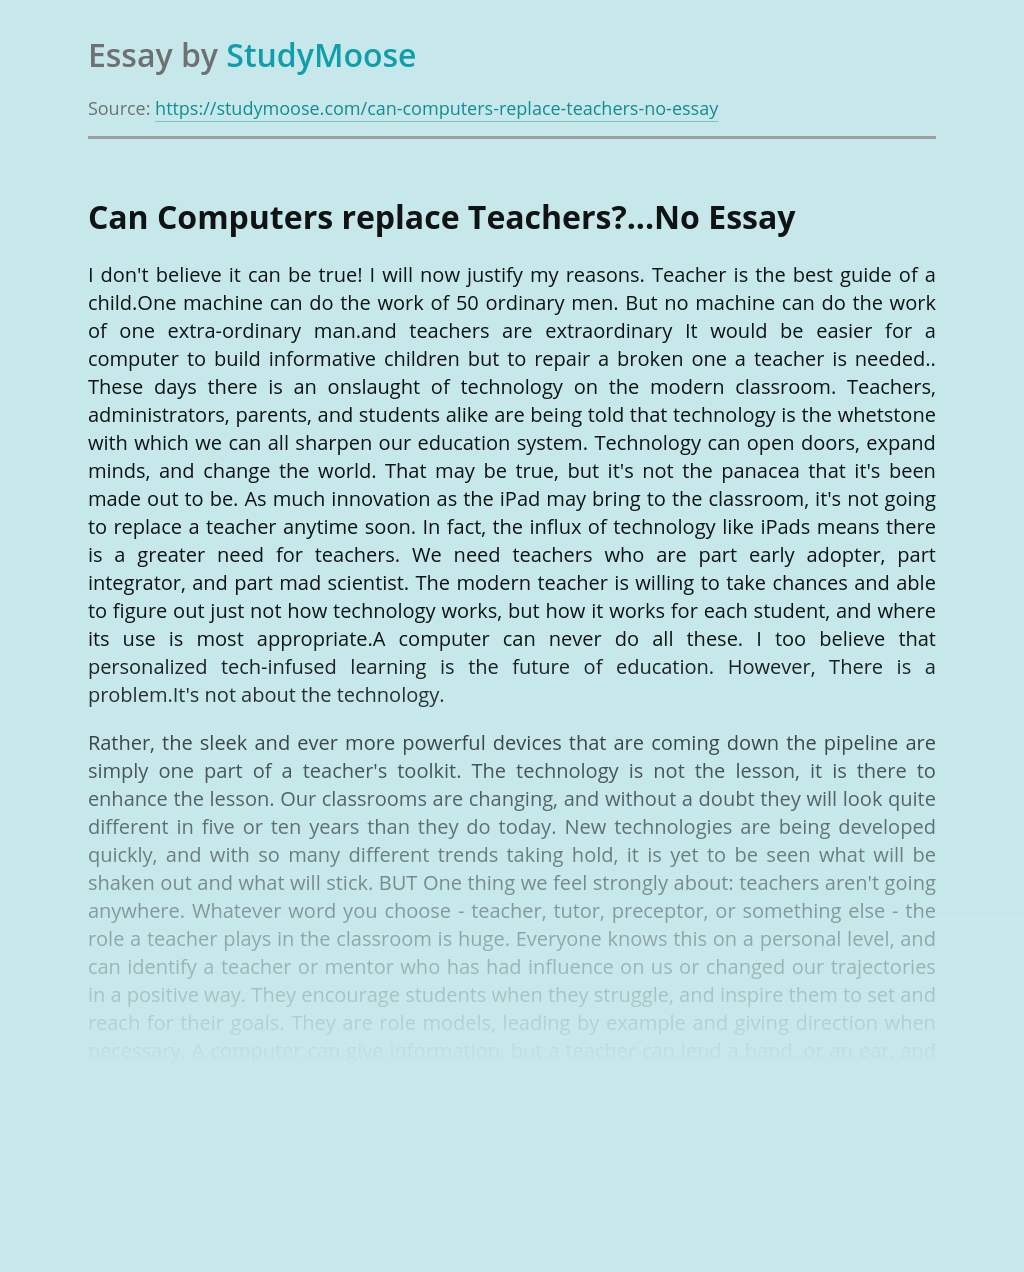 Can Computers replace Teachers?...No